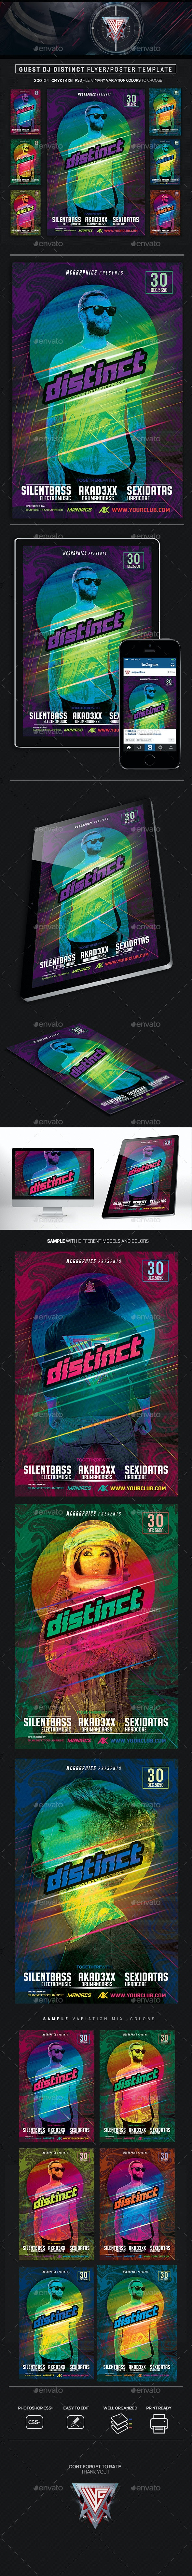 Guest DJ Distinct Flyer/Poster Template - Clubs & Parties Events